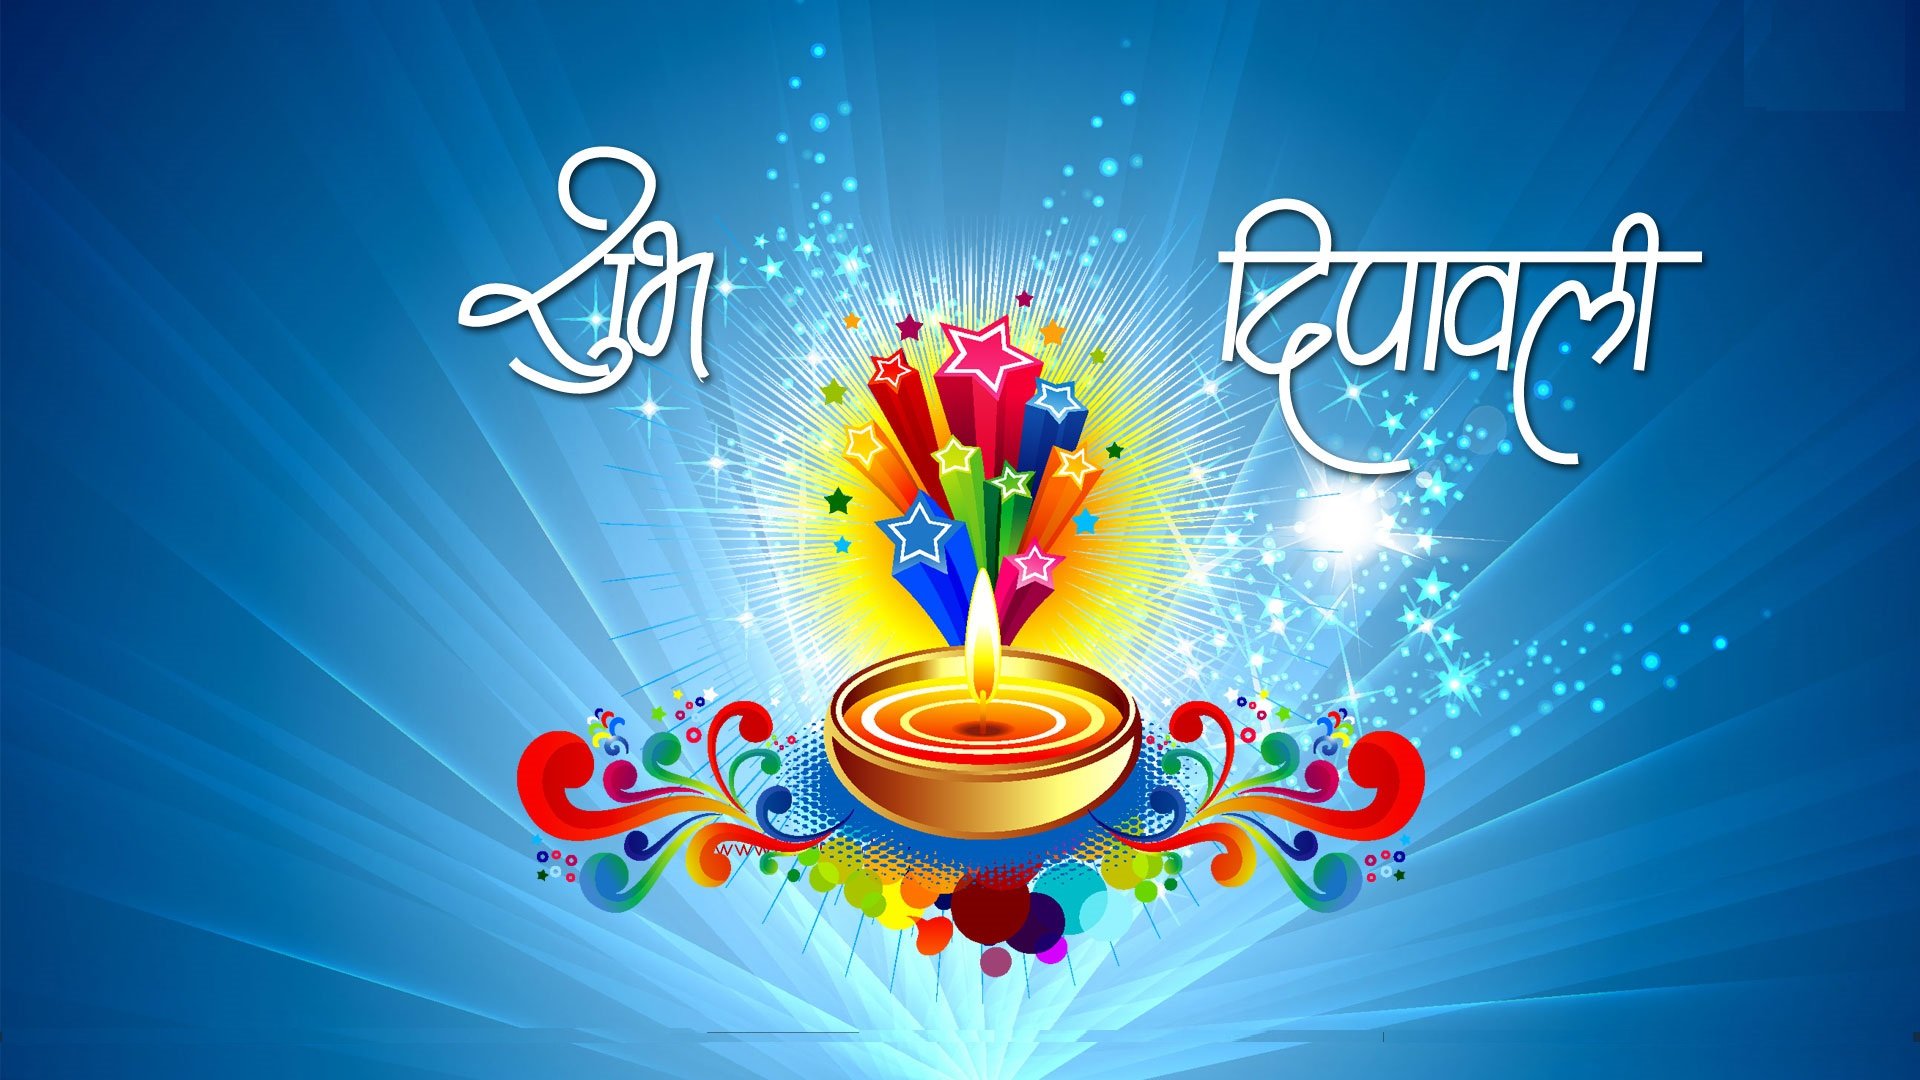 Fantastic Wallpaper Love Diwali - Happy-Diwali-Images-for-Whatsapp-DP-Profile-Wallpapers-Download-1  Snapshot_94241.jpg